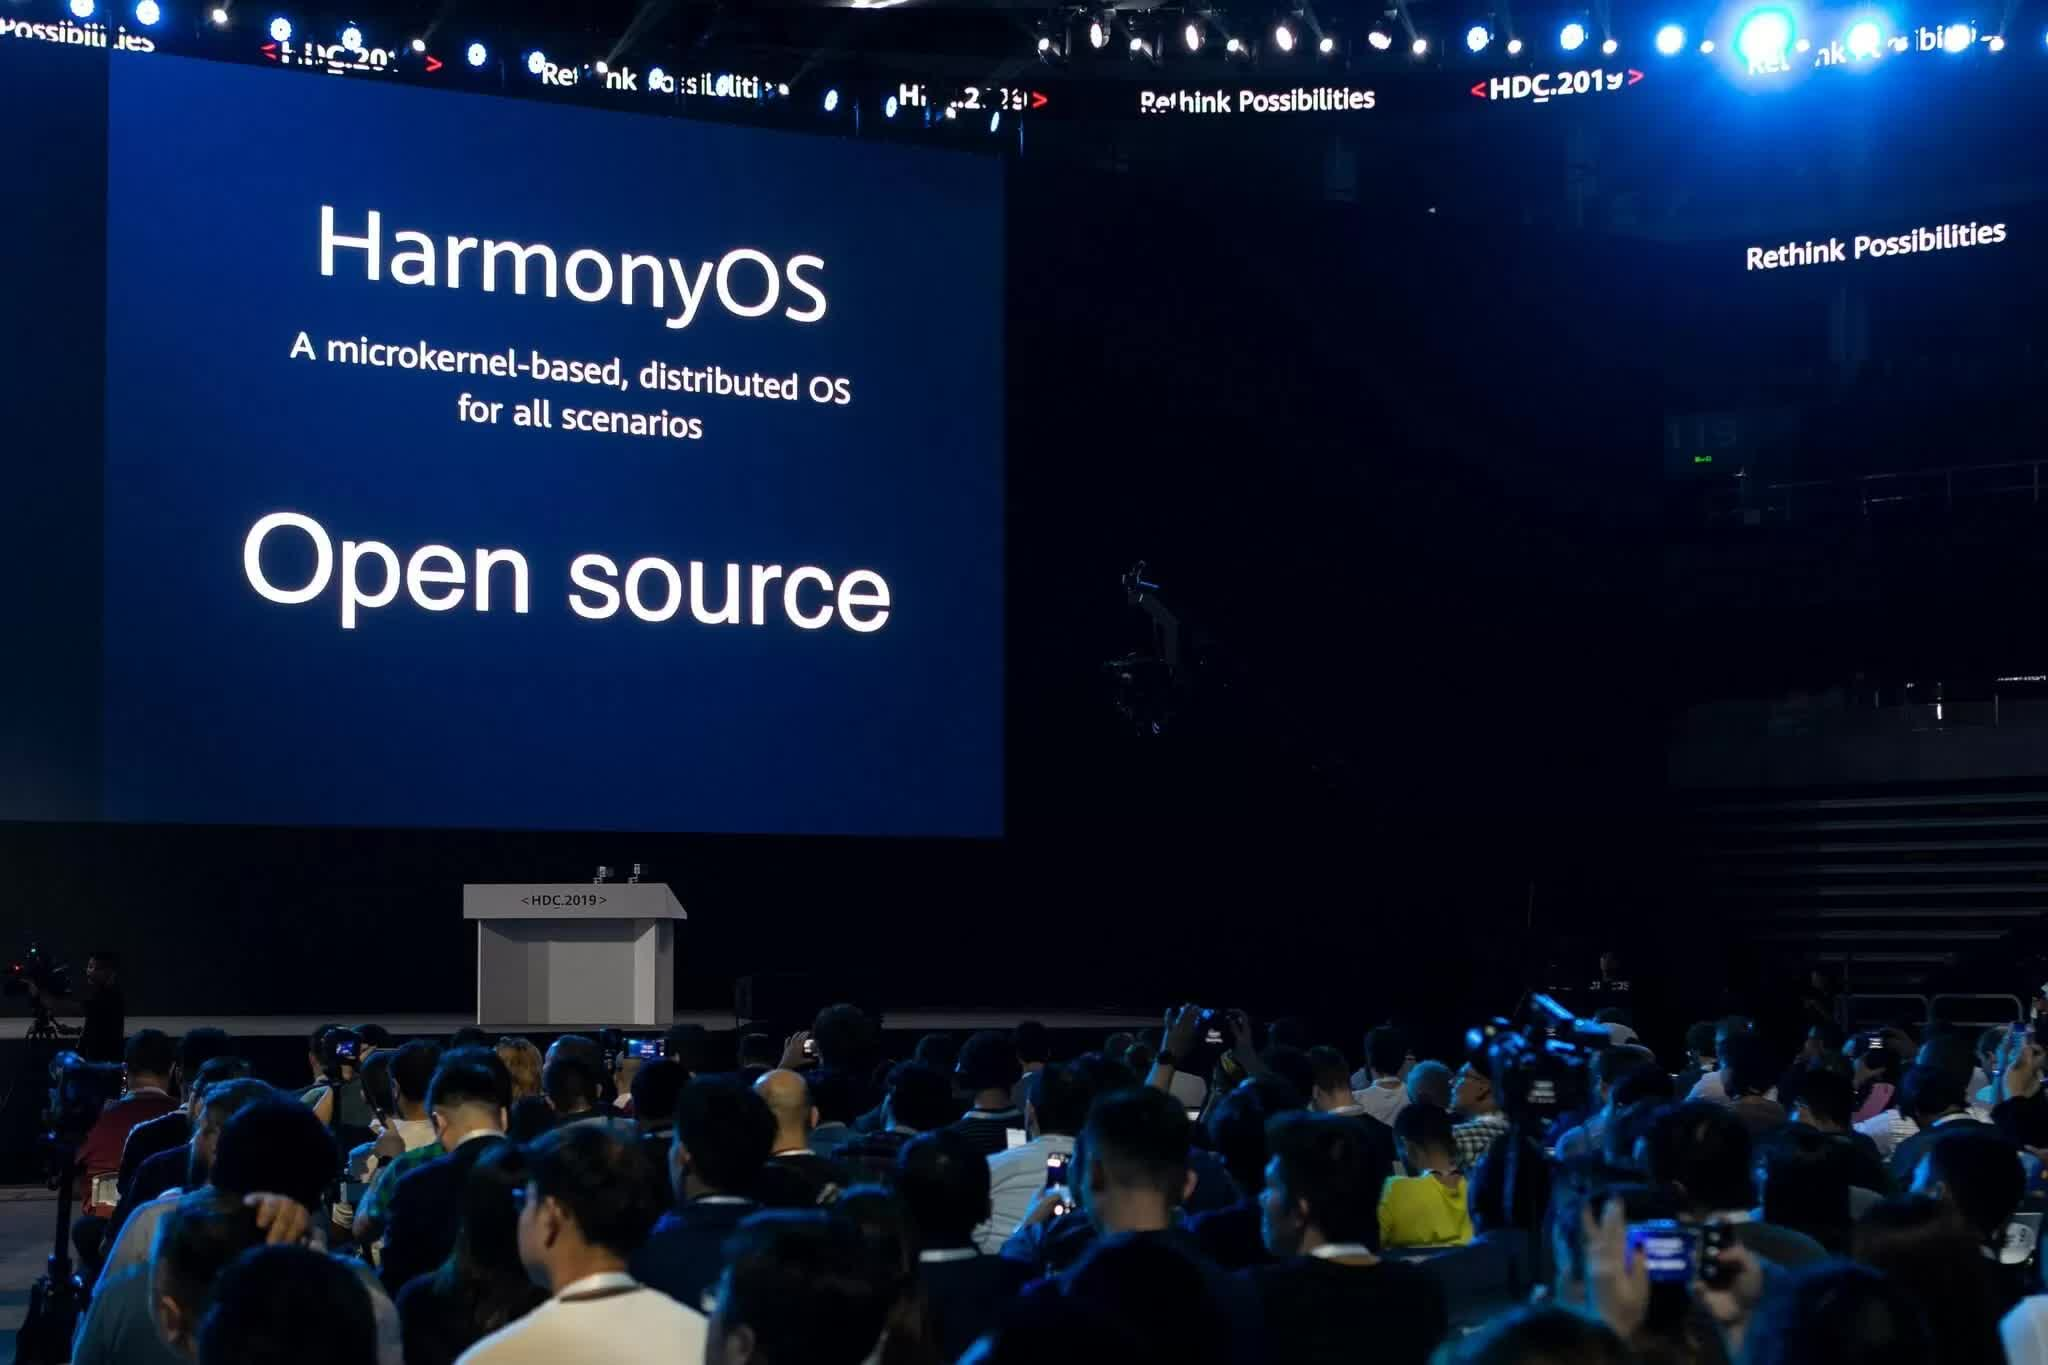 Huawei HarmonyOS 2.0 is a poorly-disguised Android 10 clone